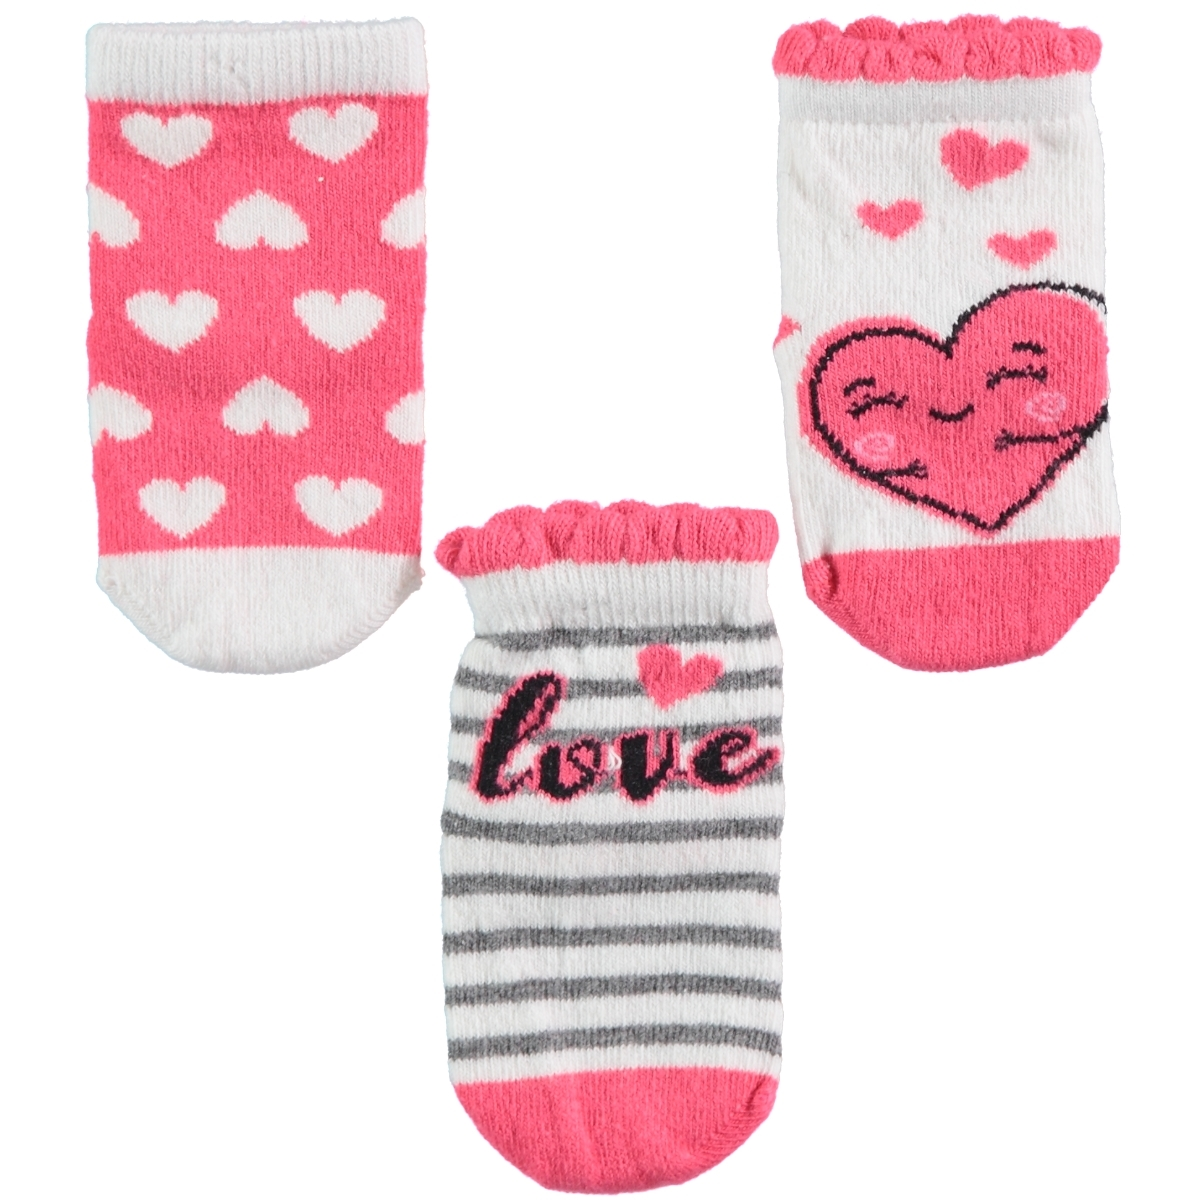 Katamino Chirping baby girl baby socks 3-set, 0-12 months, tongue in cheek